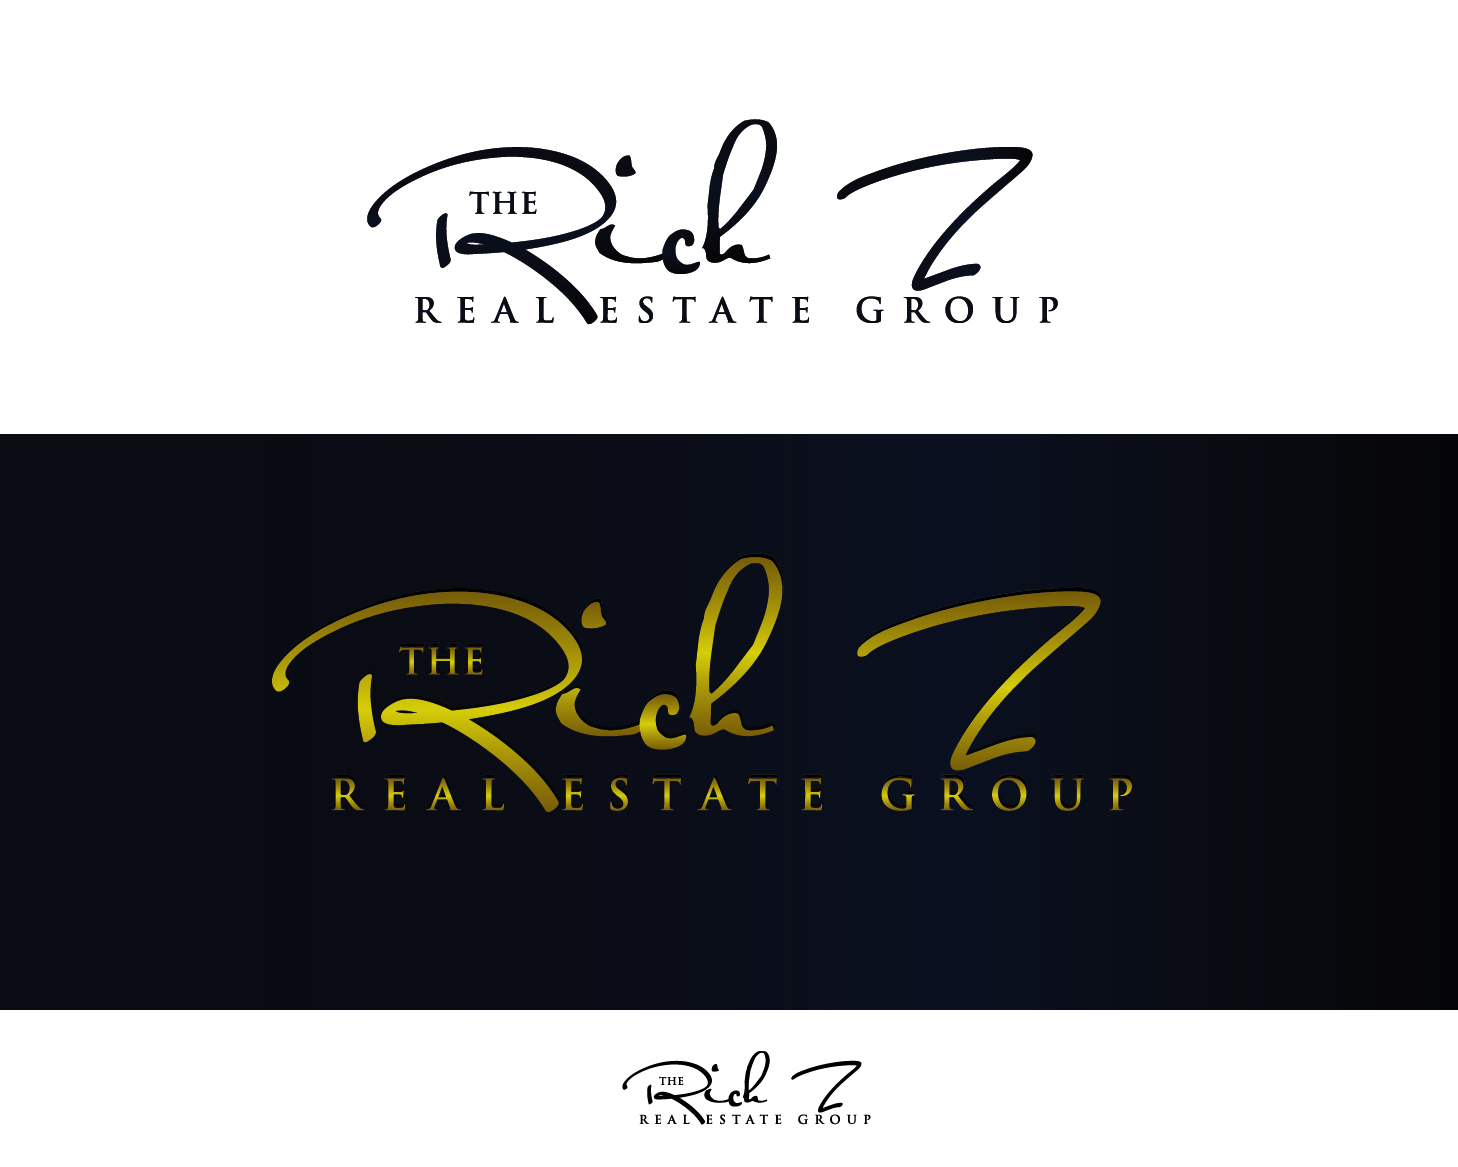 Logo Design by VENTSISLAV KOVACHEV - Entry No. 52 in the Logo Design Contest The Rich Z. Real Estate Group Logo Design.